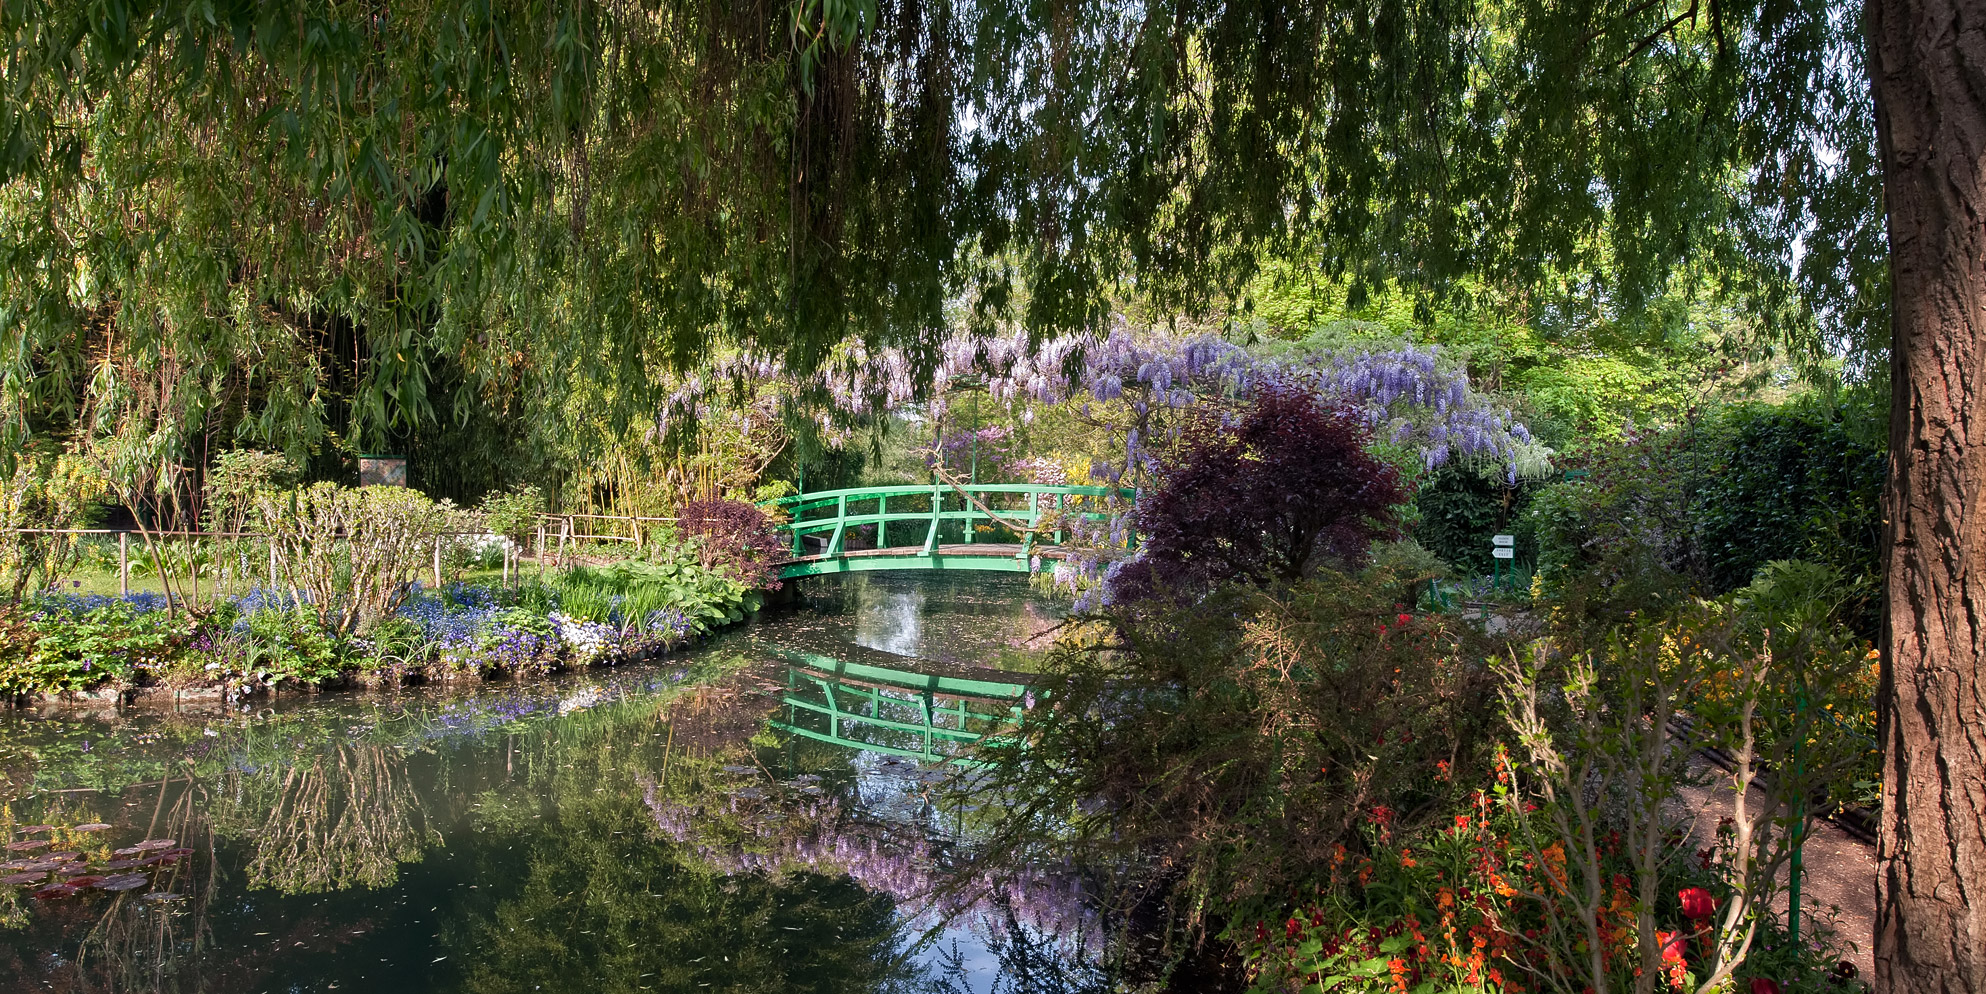 Fondation claude monet le jardin d 39 eau fondation claude monet for Les jardins de lee